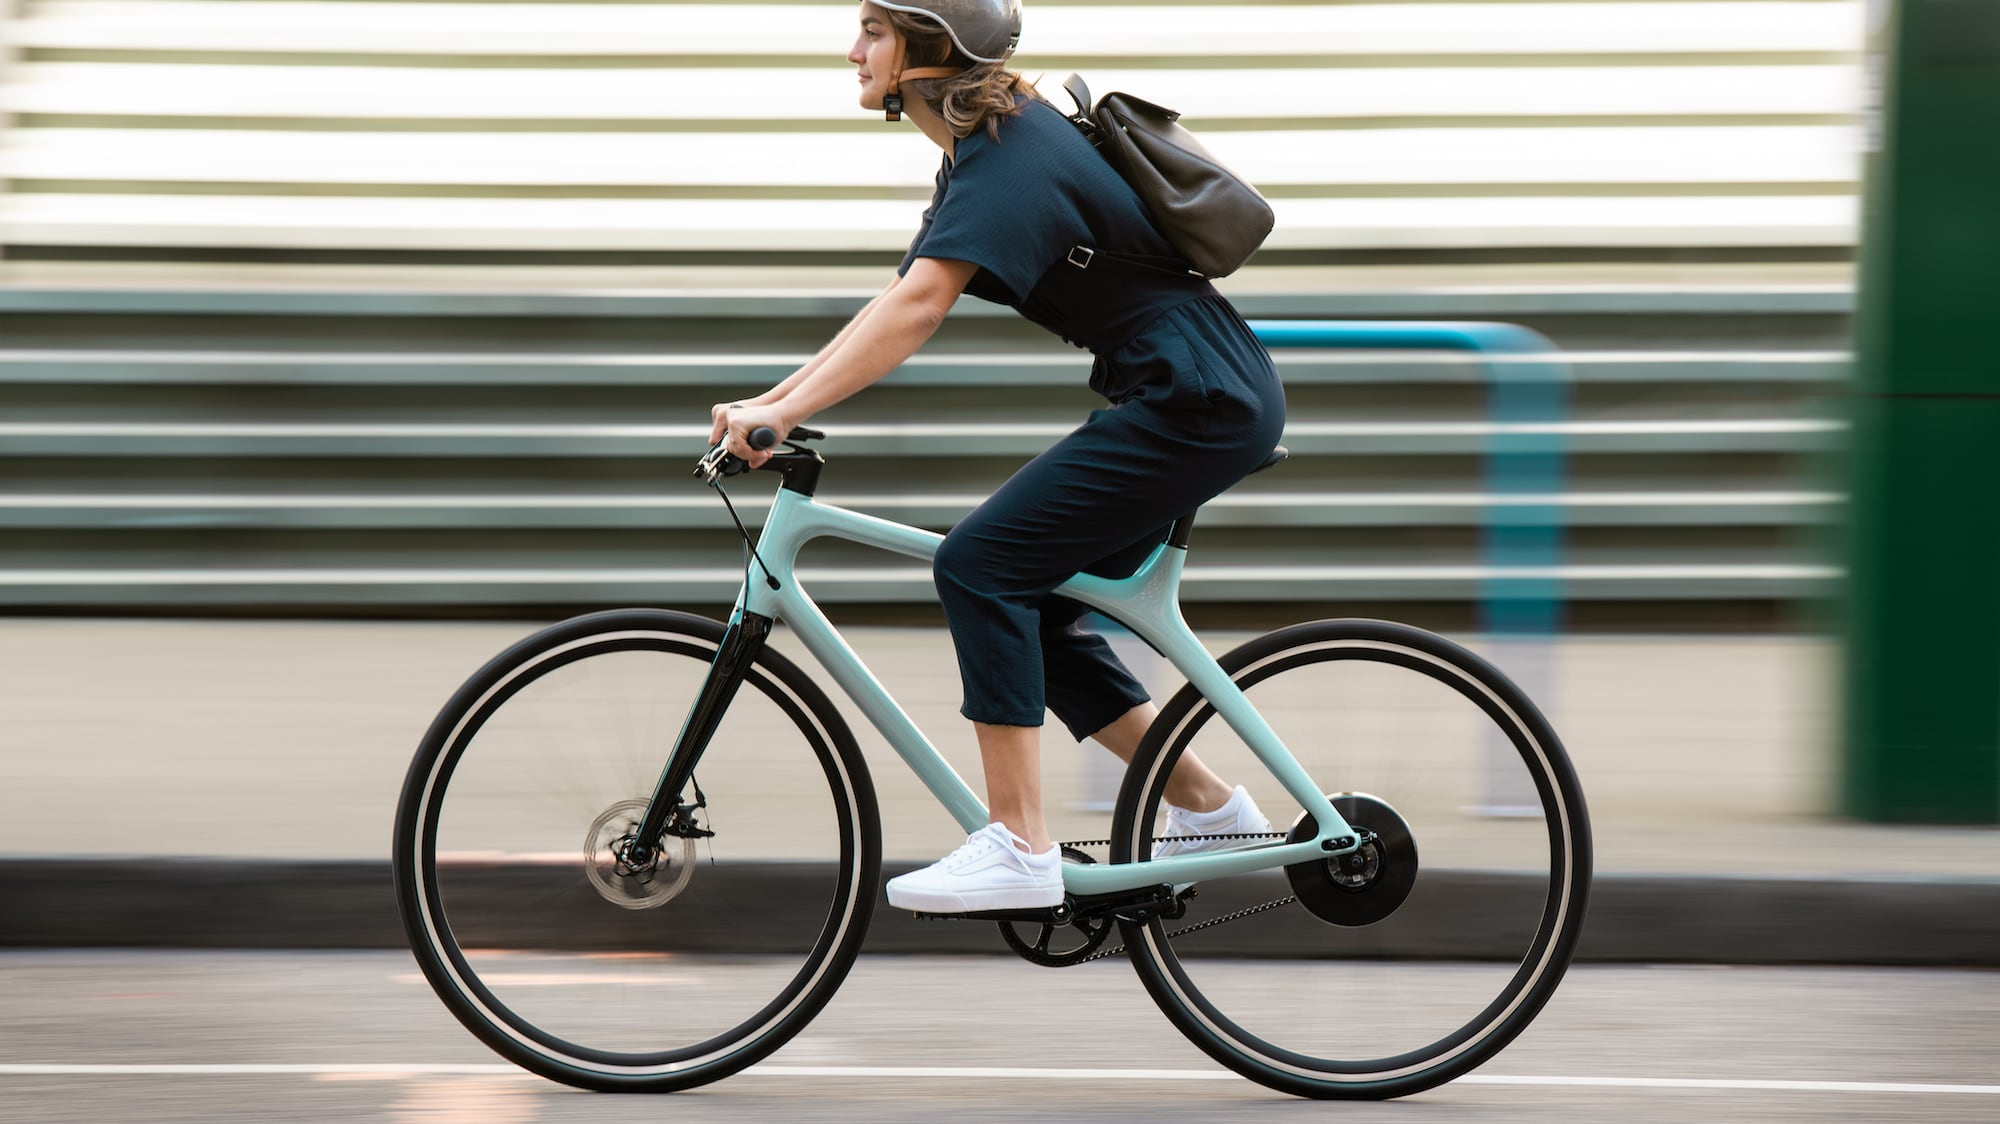 Gogoro Eeyo 1 Lightweight eBike has a minimalist, streamlined design